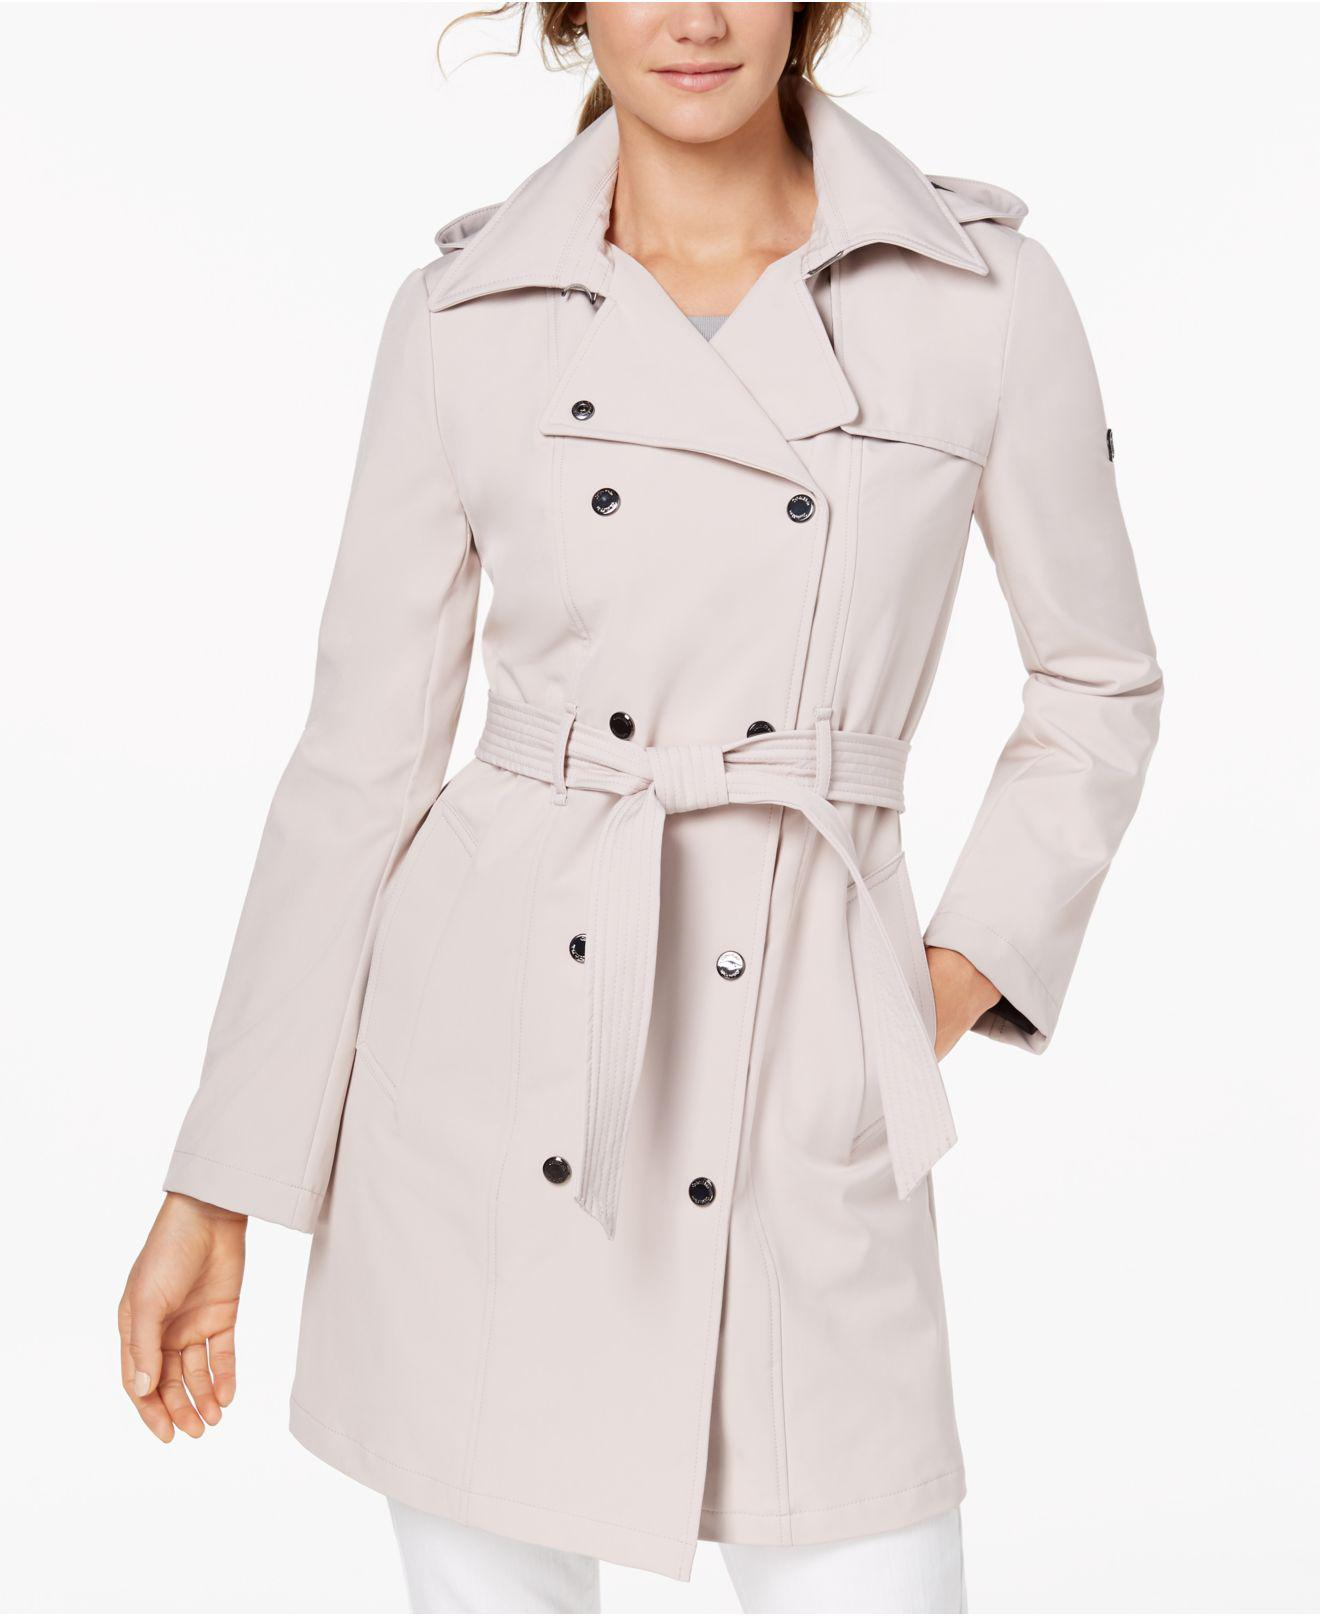 945d4a9a93d Lyst - Calvin Klein Hooded Double-breasted Trench Coat in Natural ...